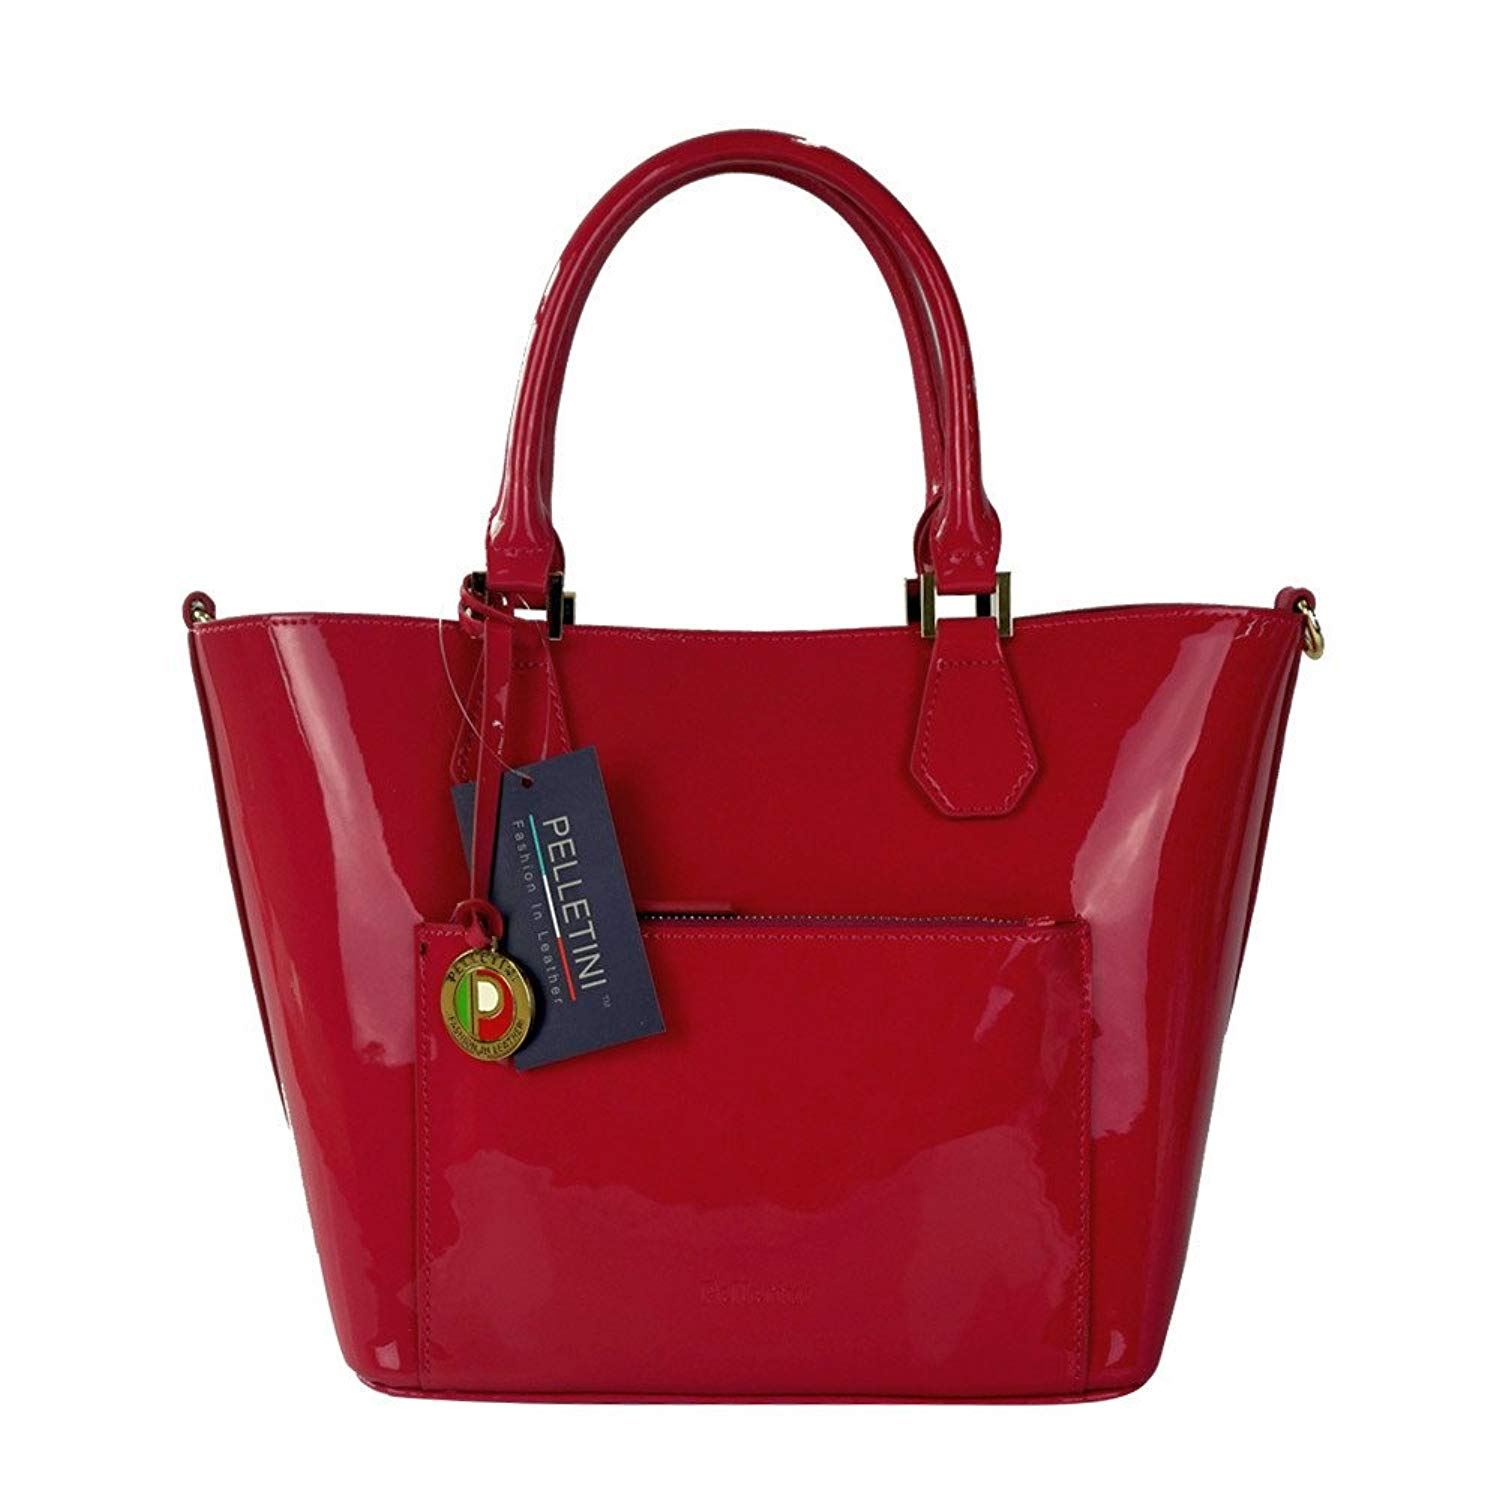 Get Quotations Pelletini 2 In 1 Real Patent Leather Handbag Two Shoulder Handbags One